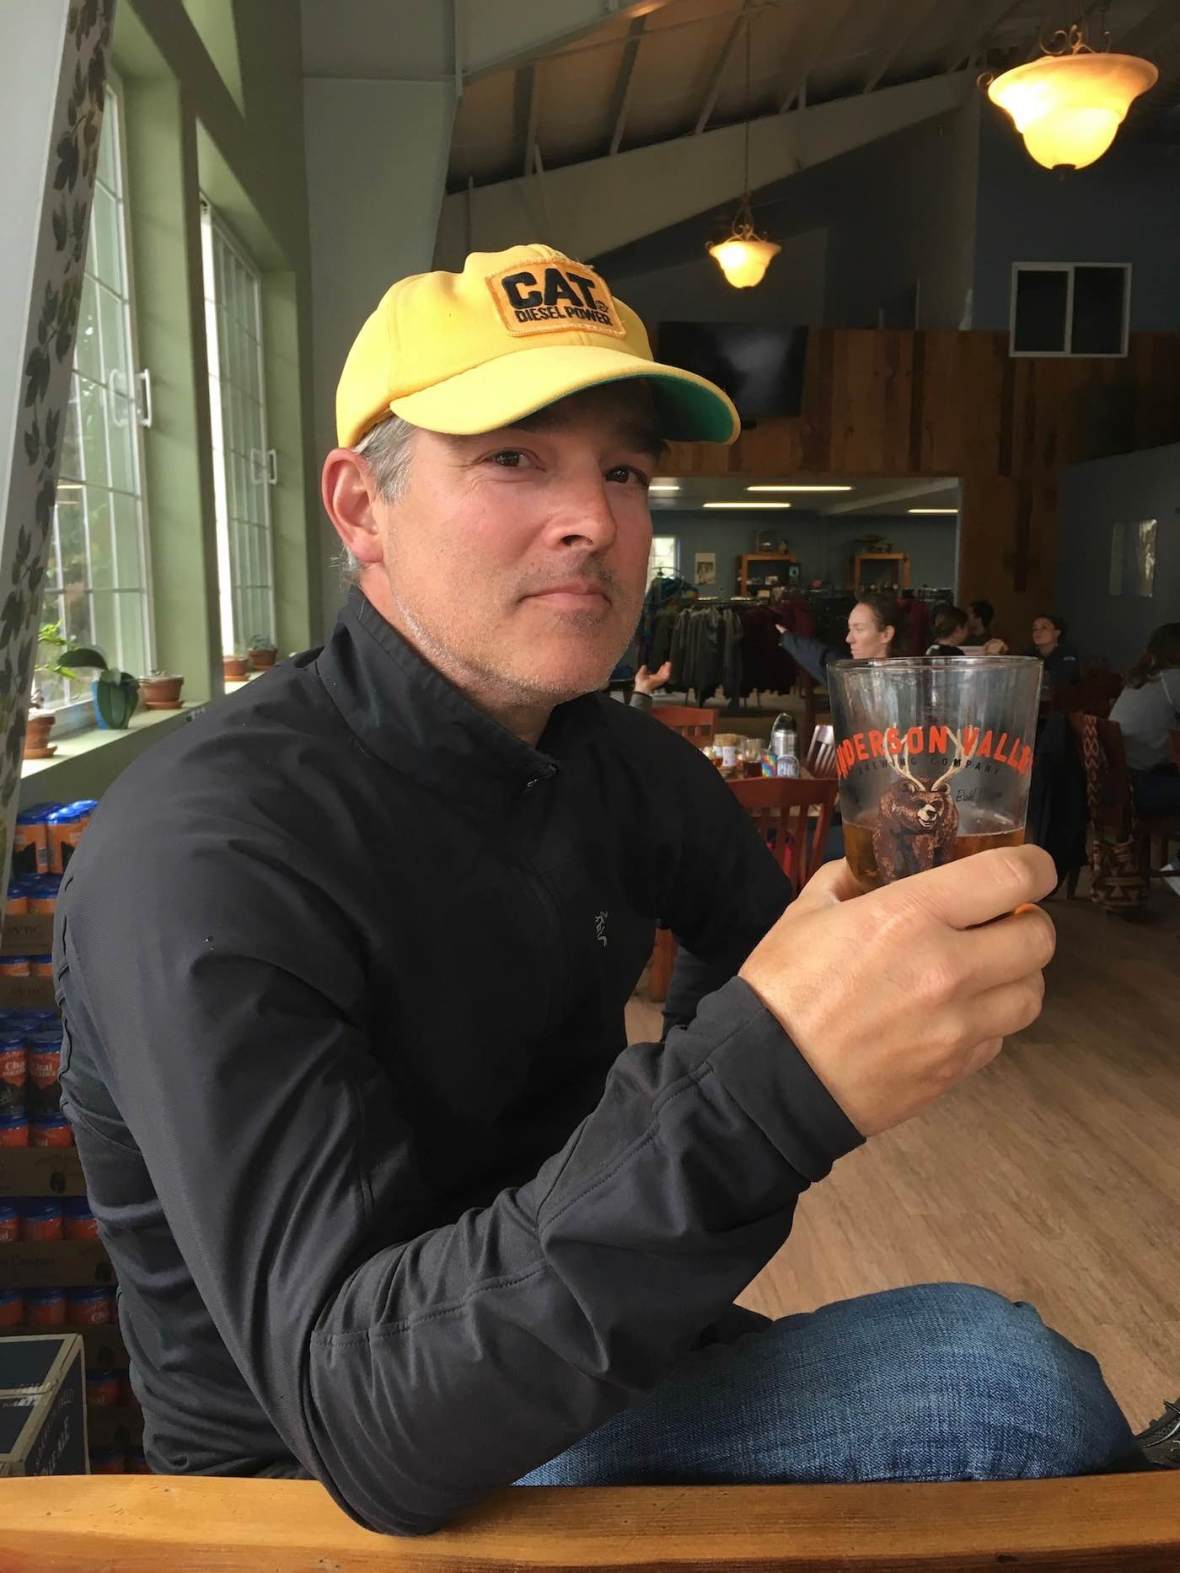 Bahl hornin' (good drinking) at Anderson Valley Brewing tap room in Boonville, California